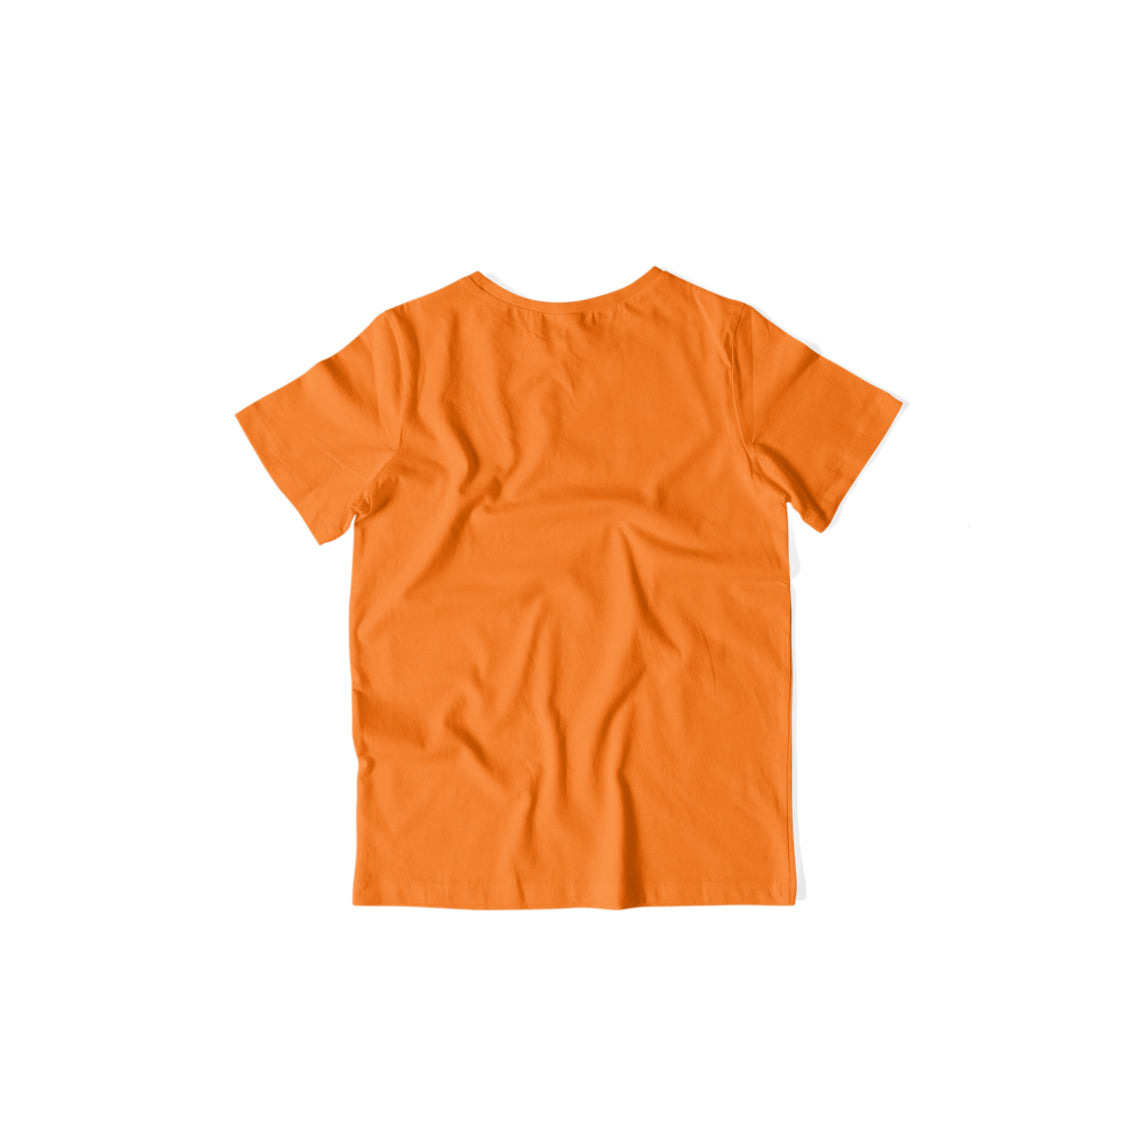 Fruit Punch - Kids Half Sleeve T-shirt